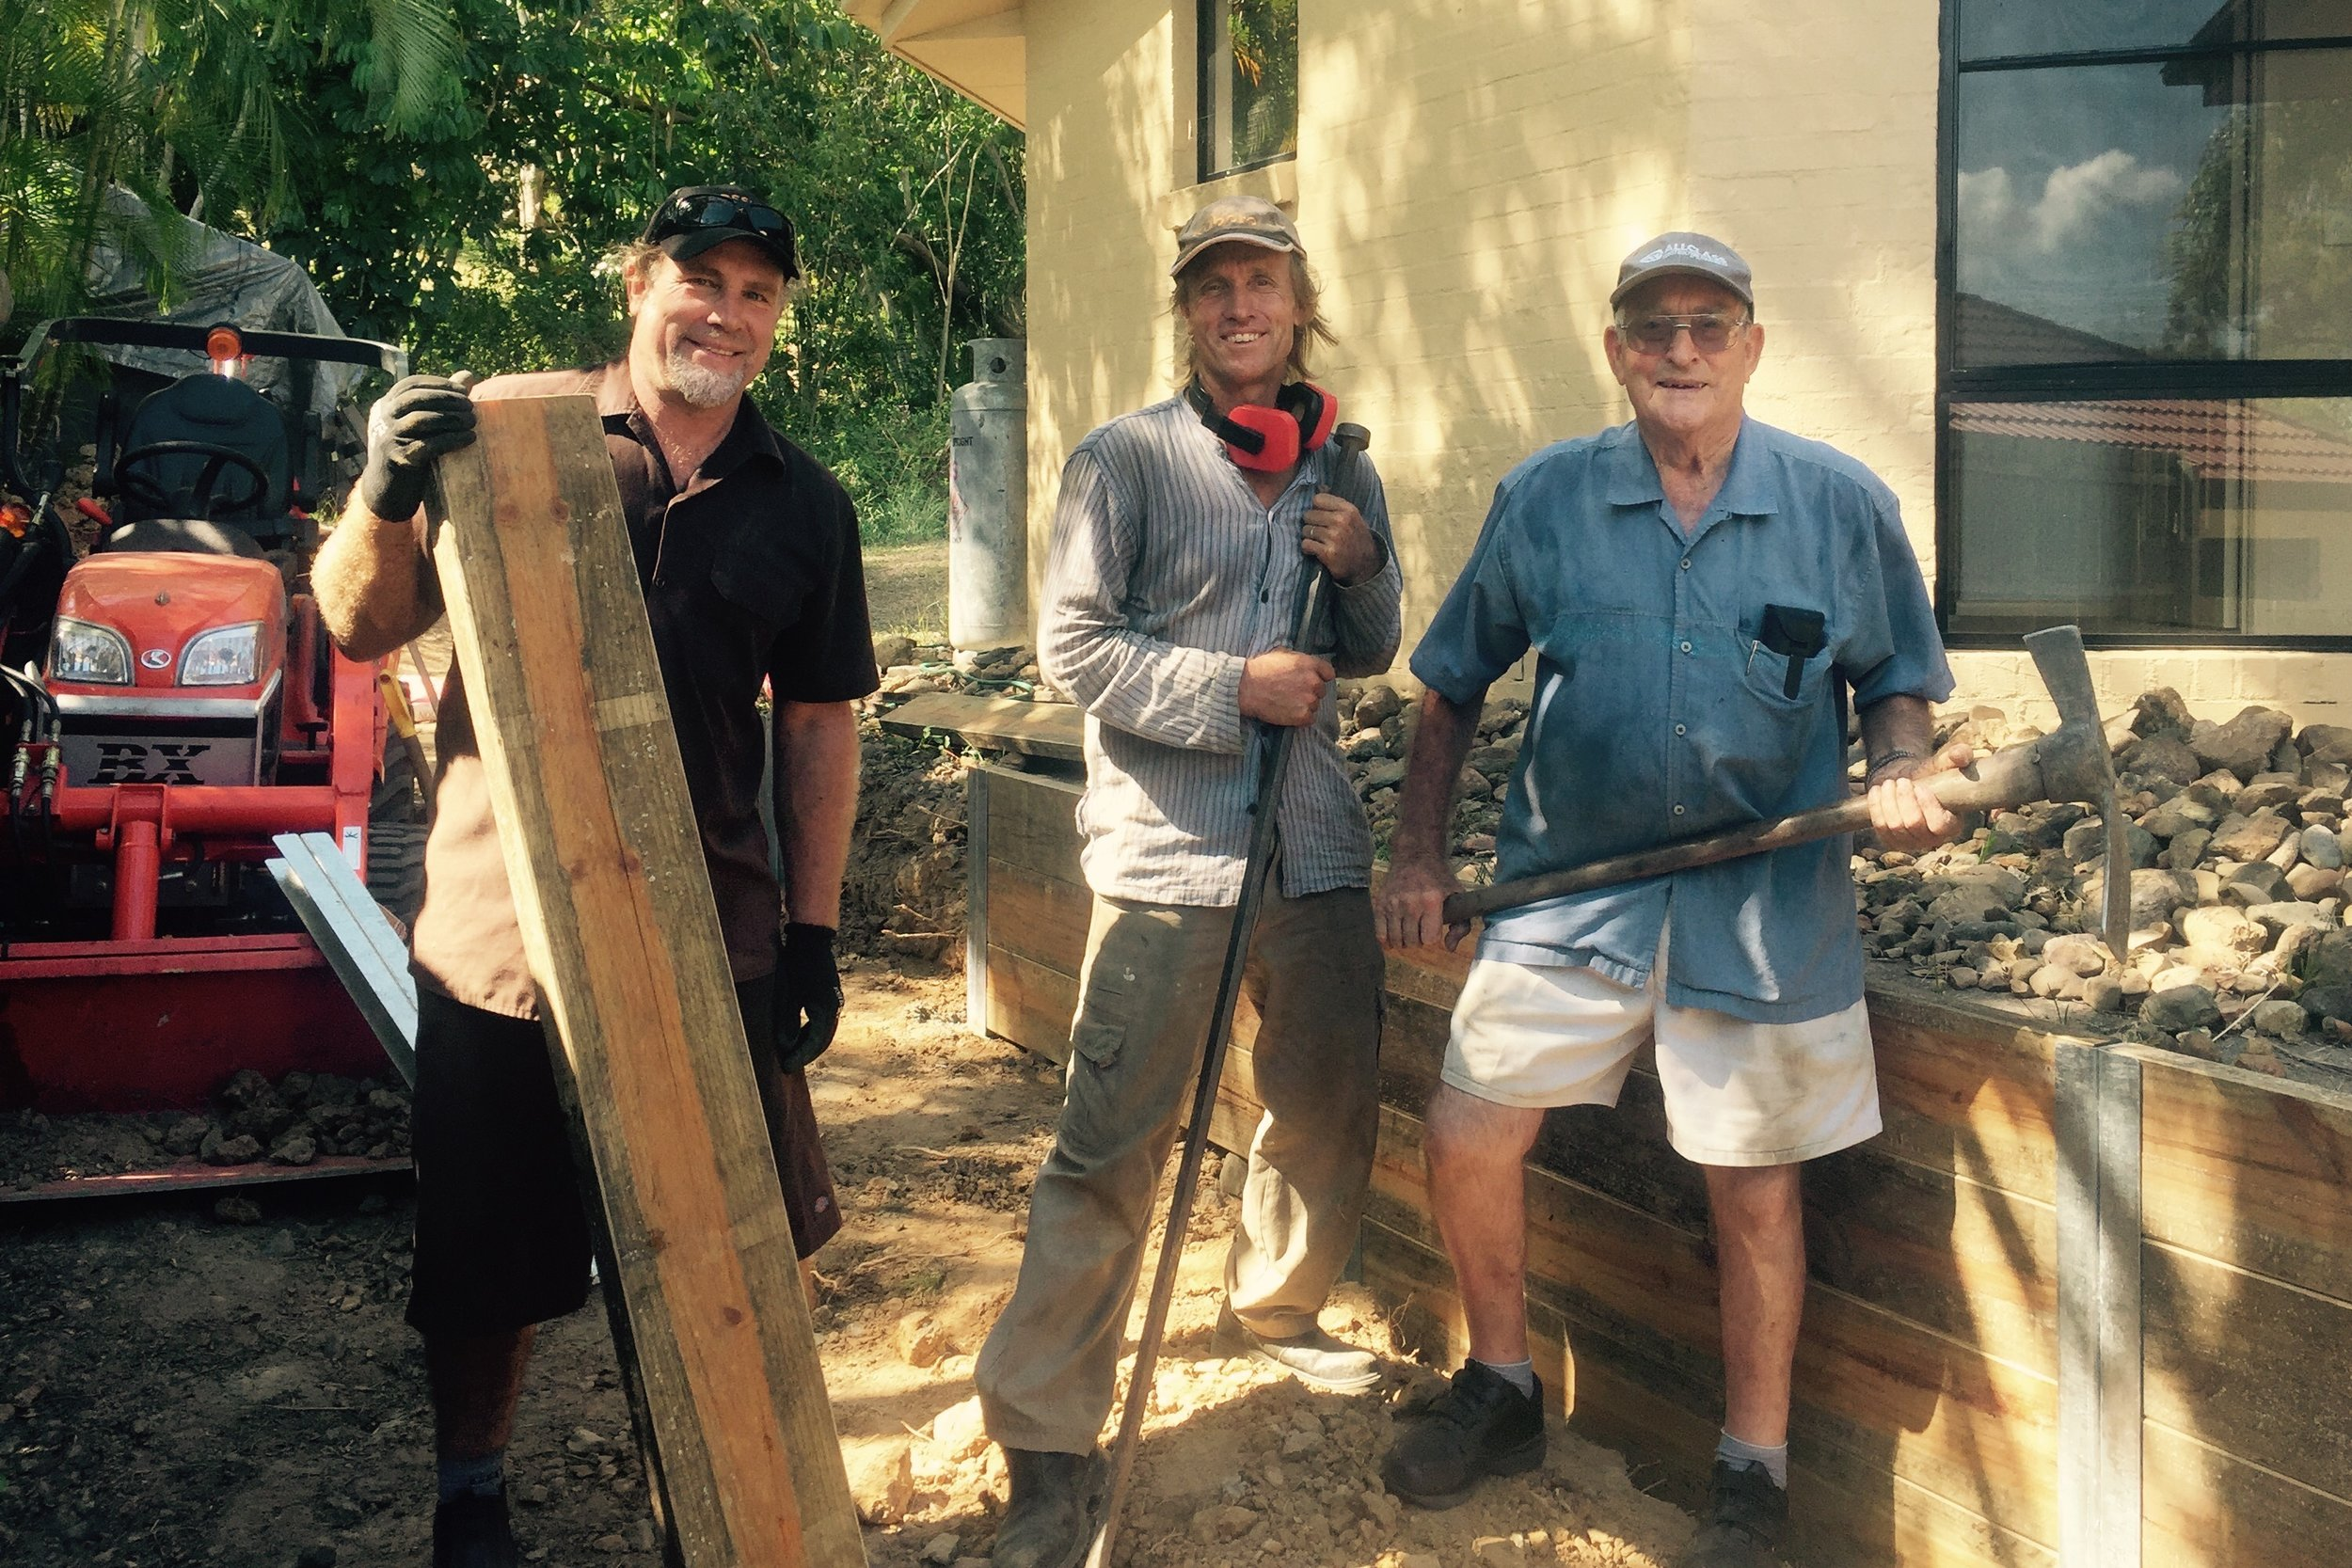 Pictured: Steve with Warwick Grace and father Ced Grace hard at work doing what blokes do well... hard yakka!!